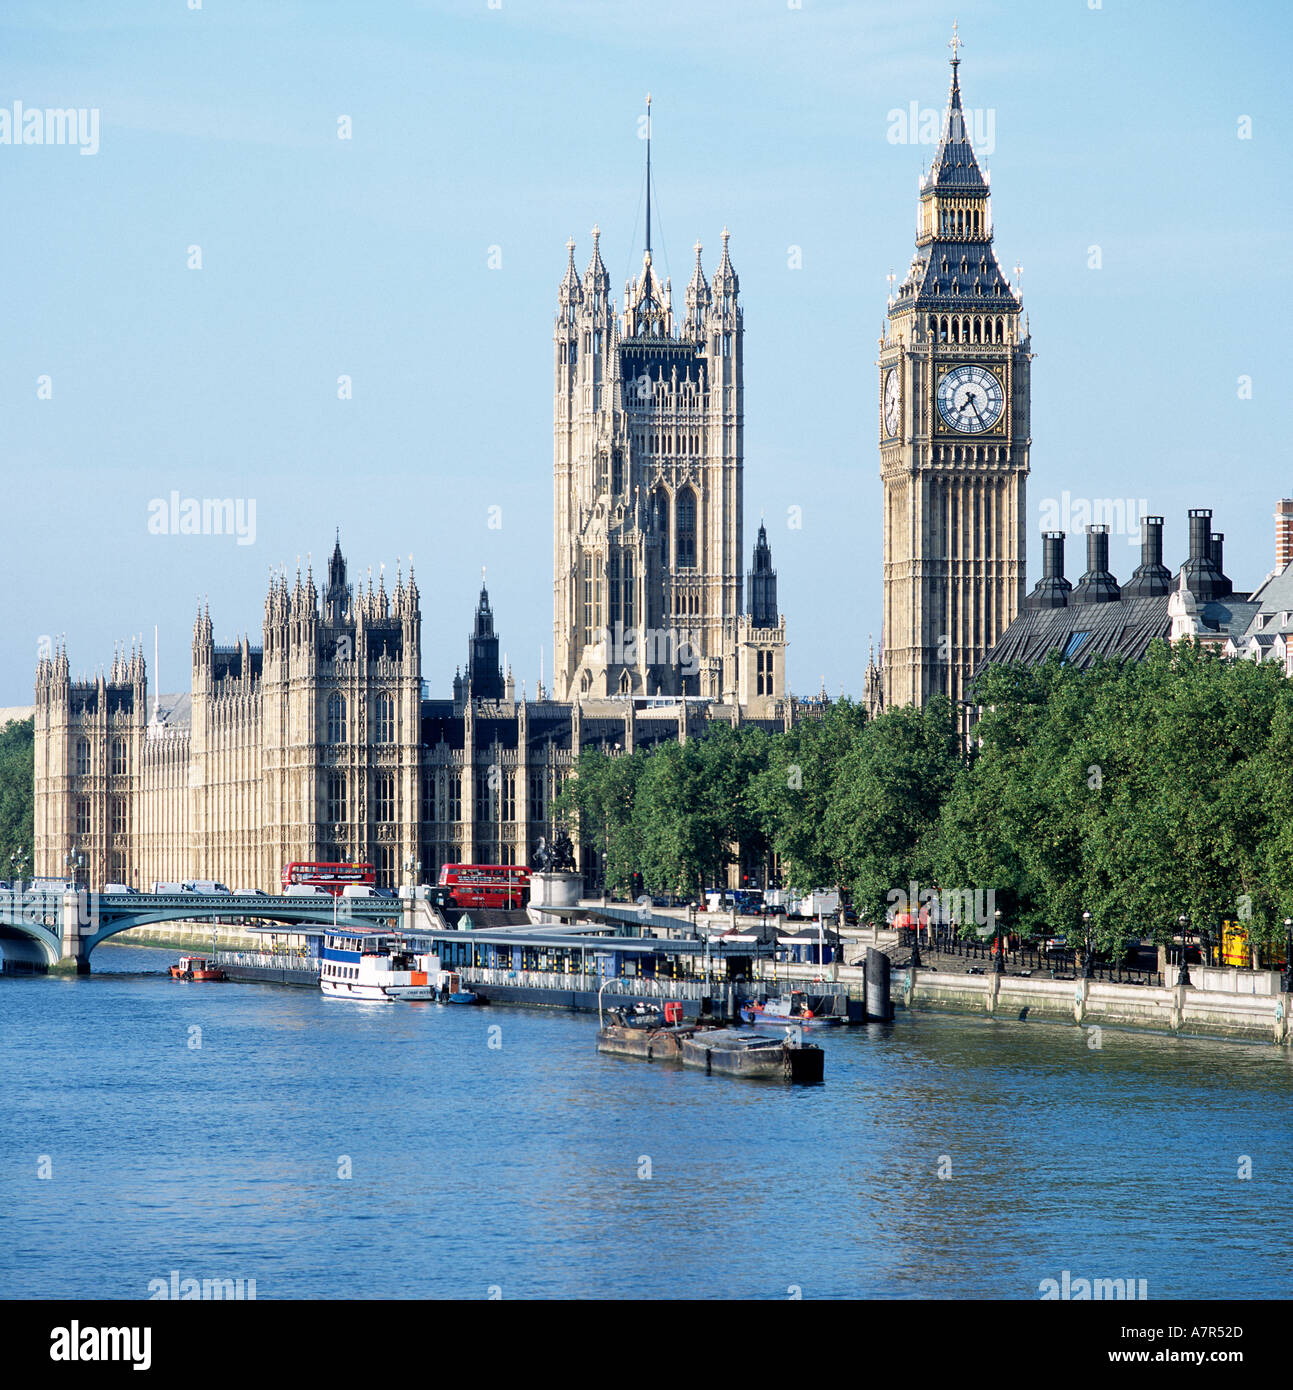 Big Ben and Houses of Parliament River Thames London Stock Photo